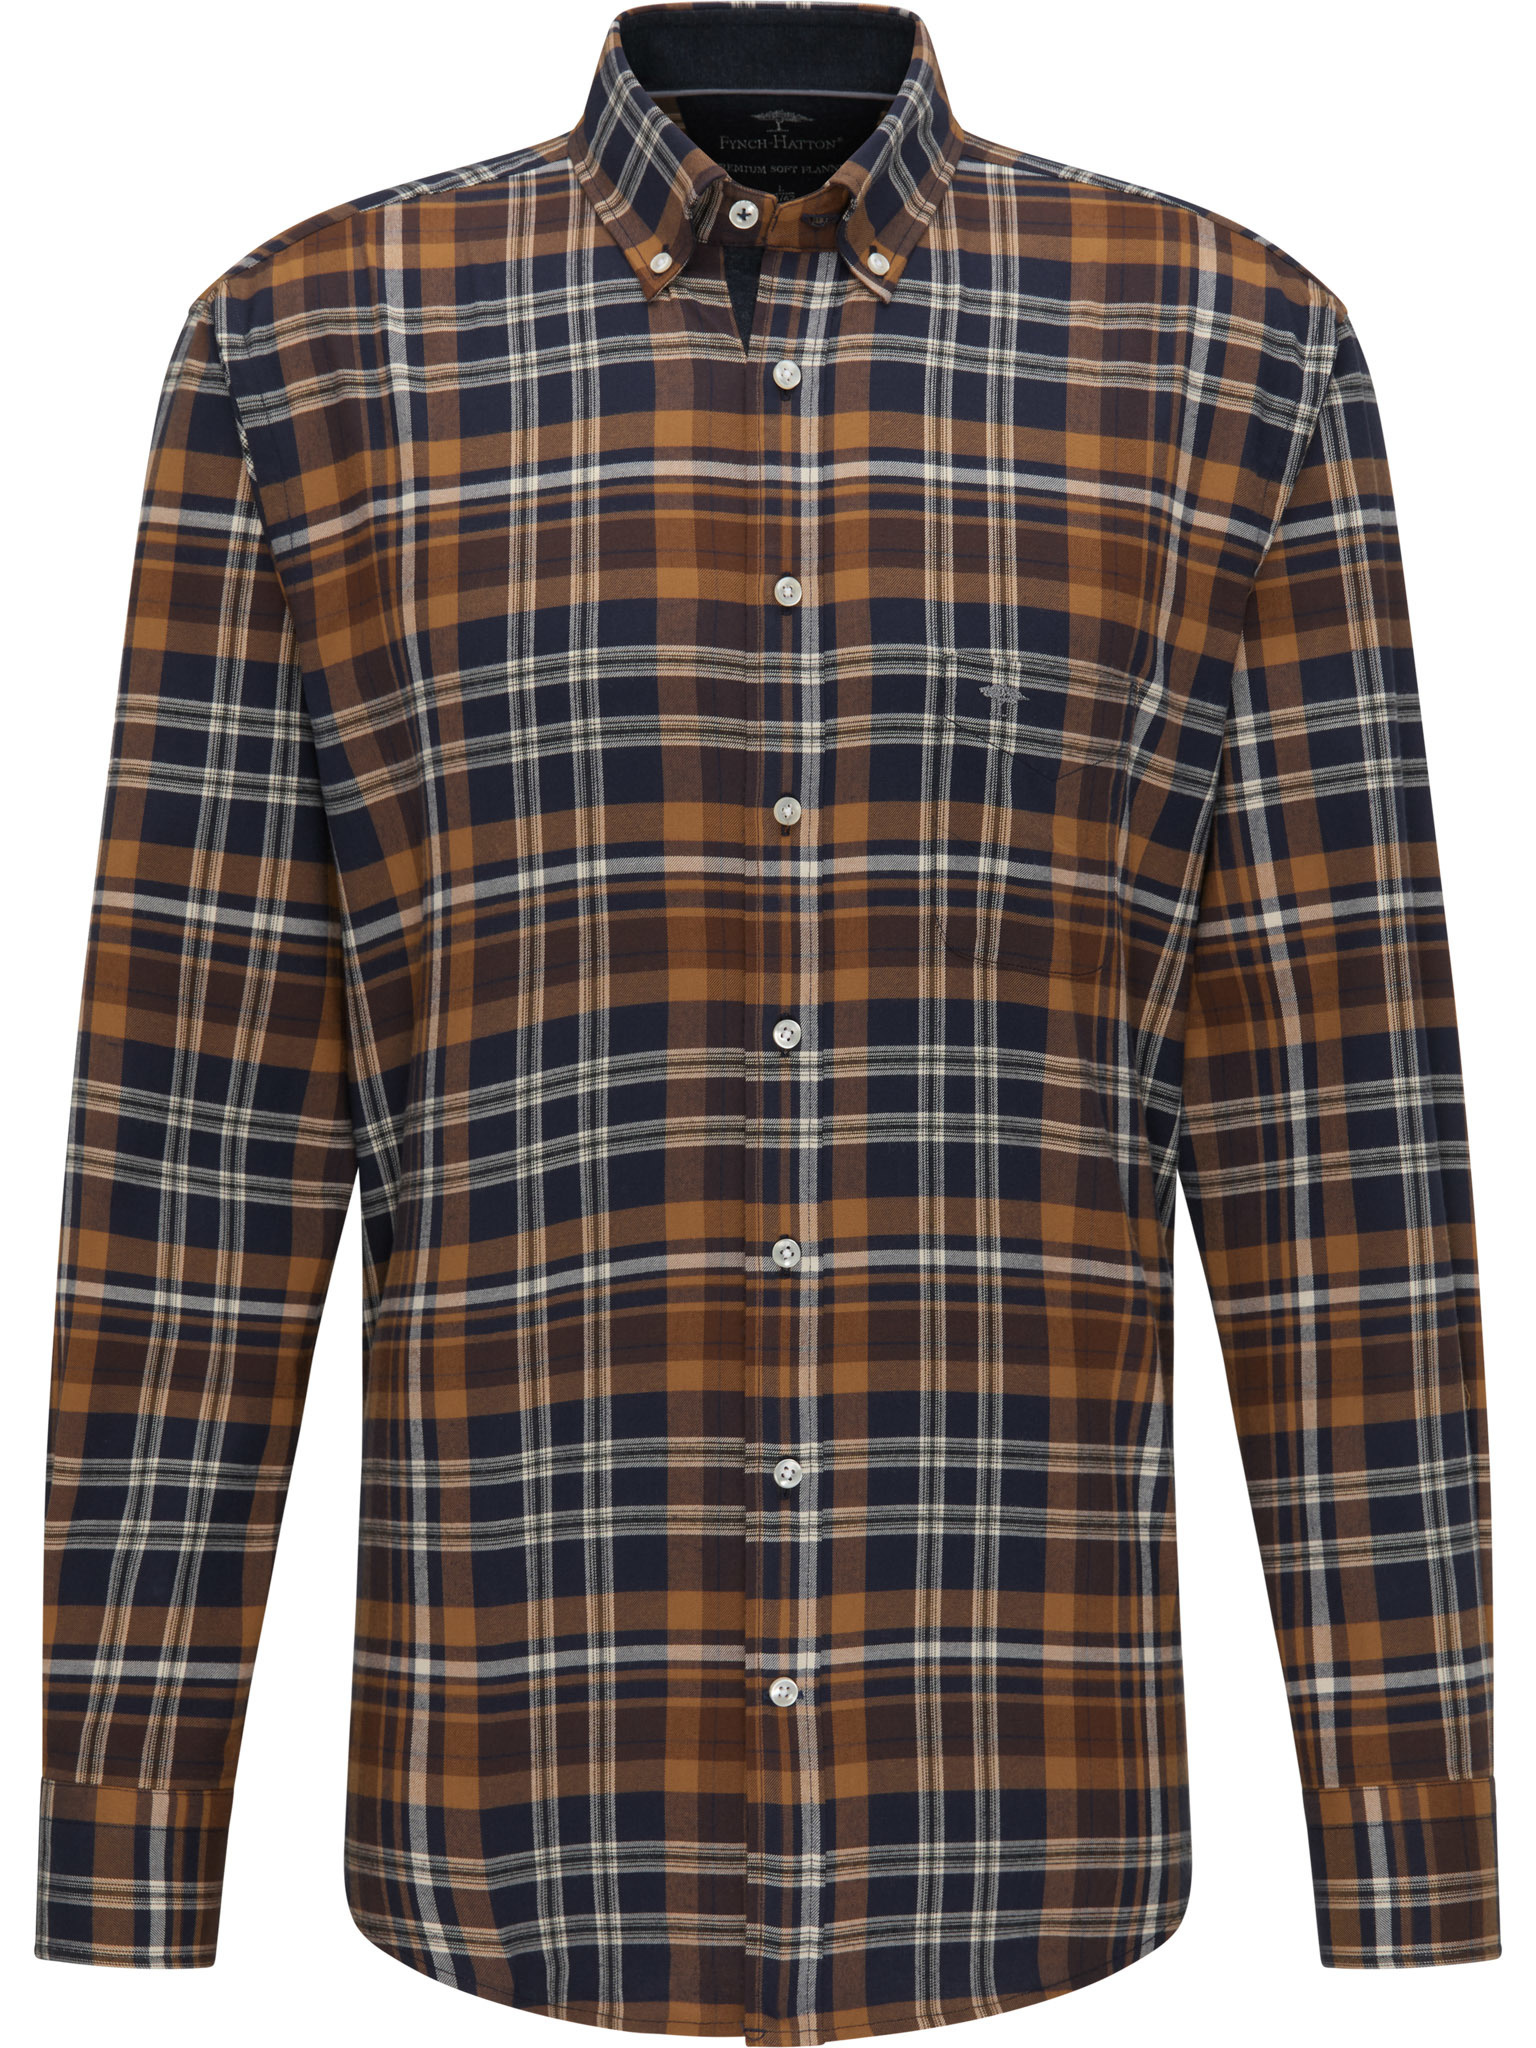 FYNCH HATTON chemise moutard check-1